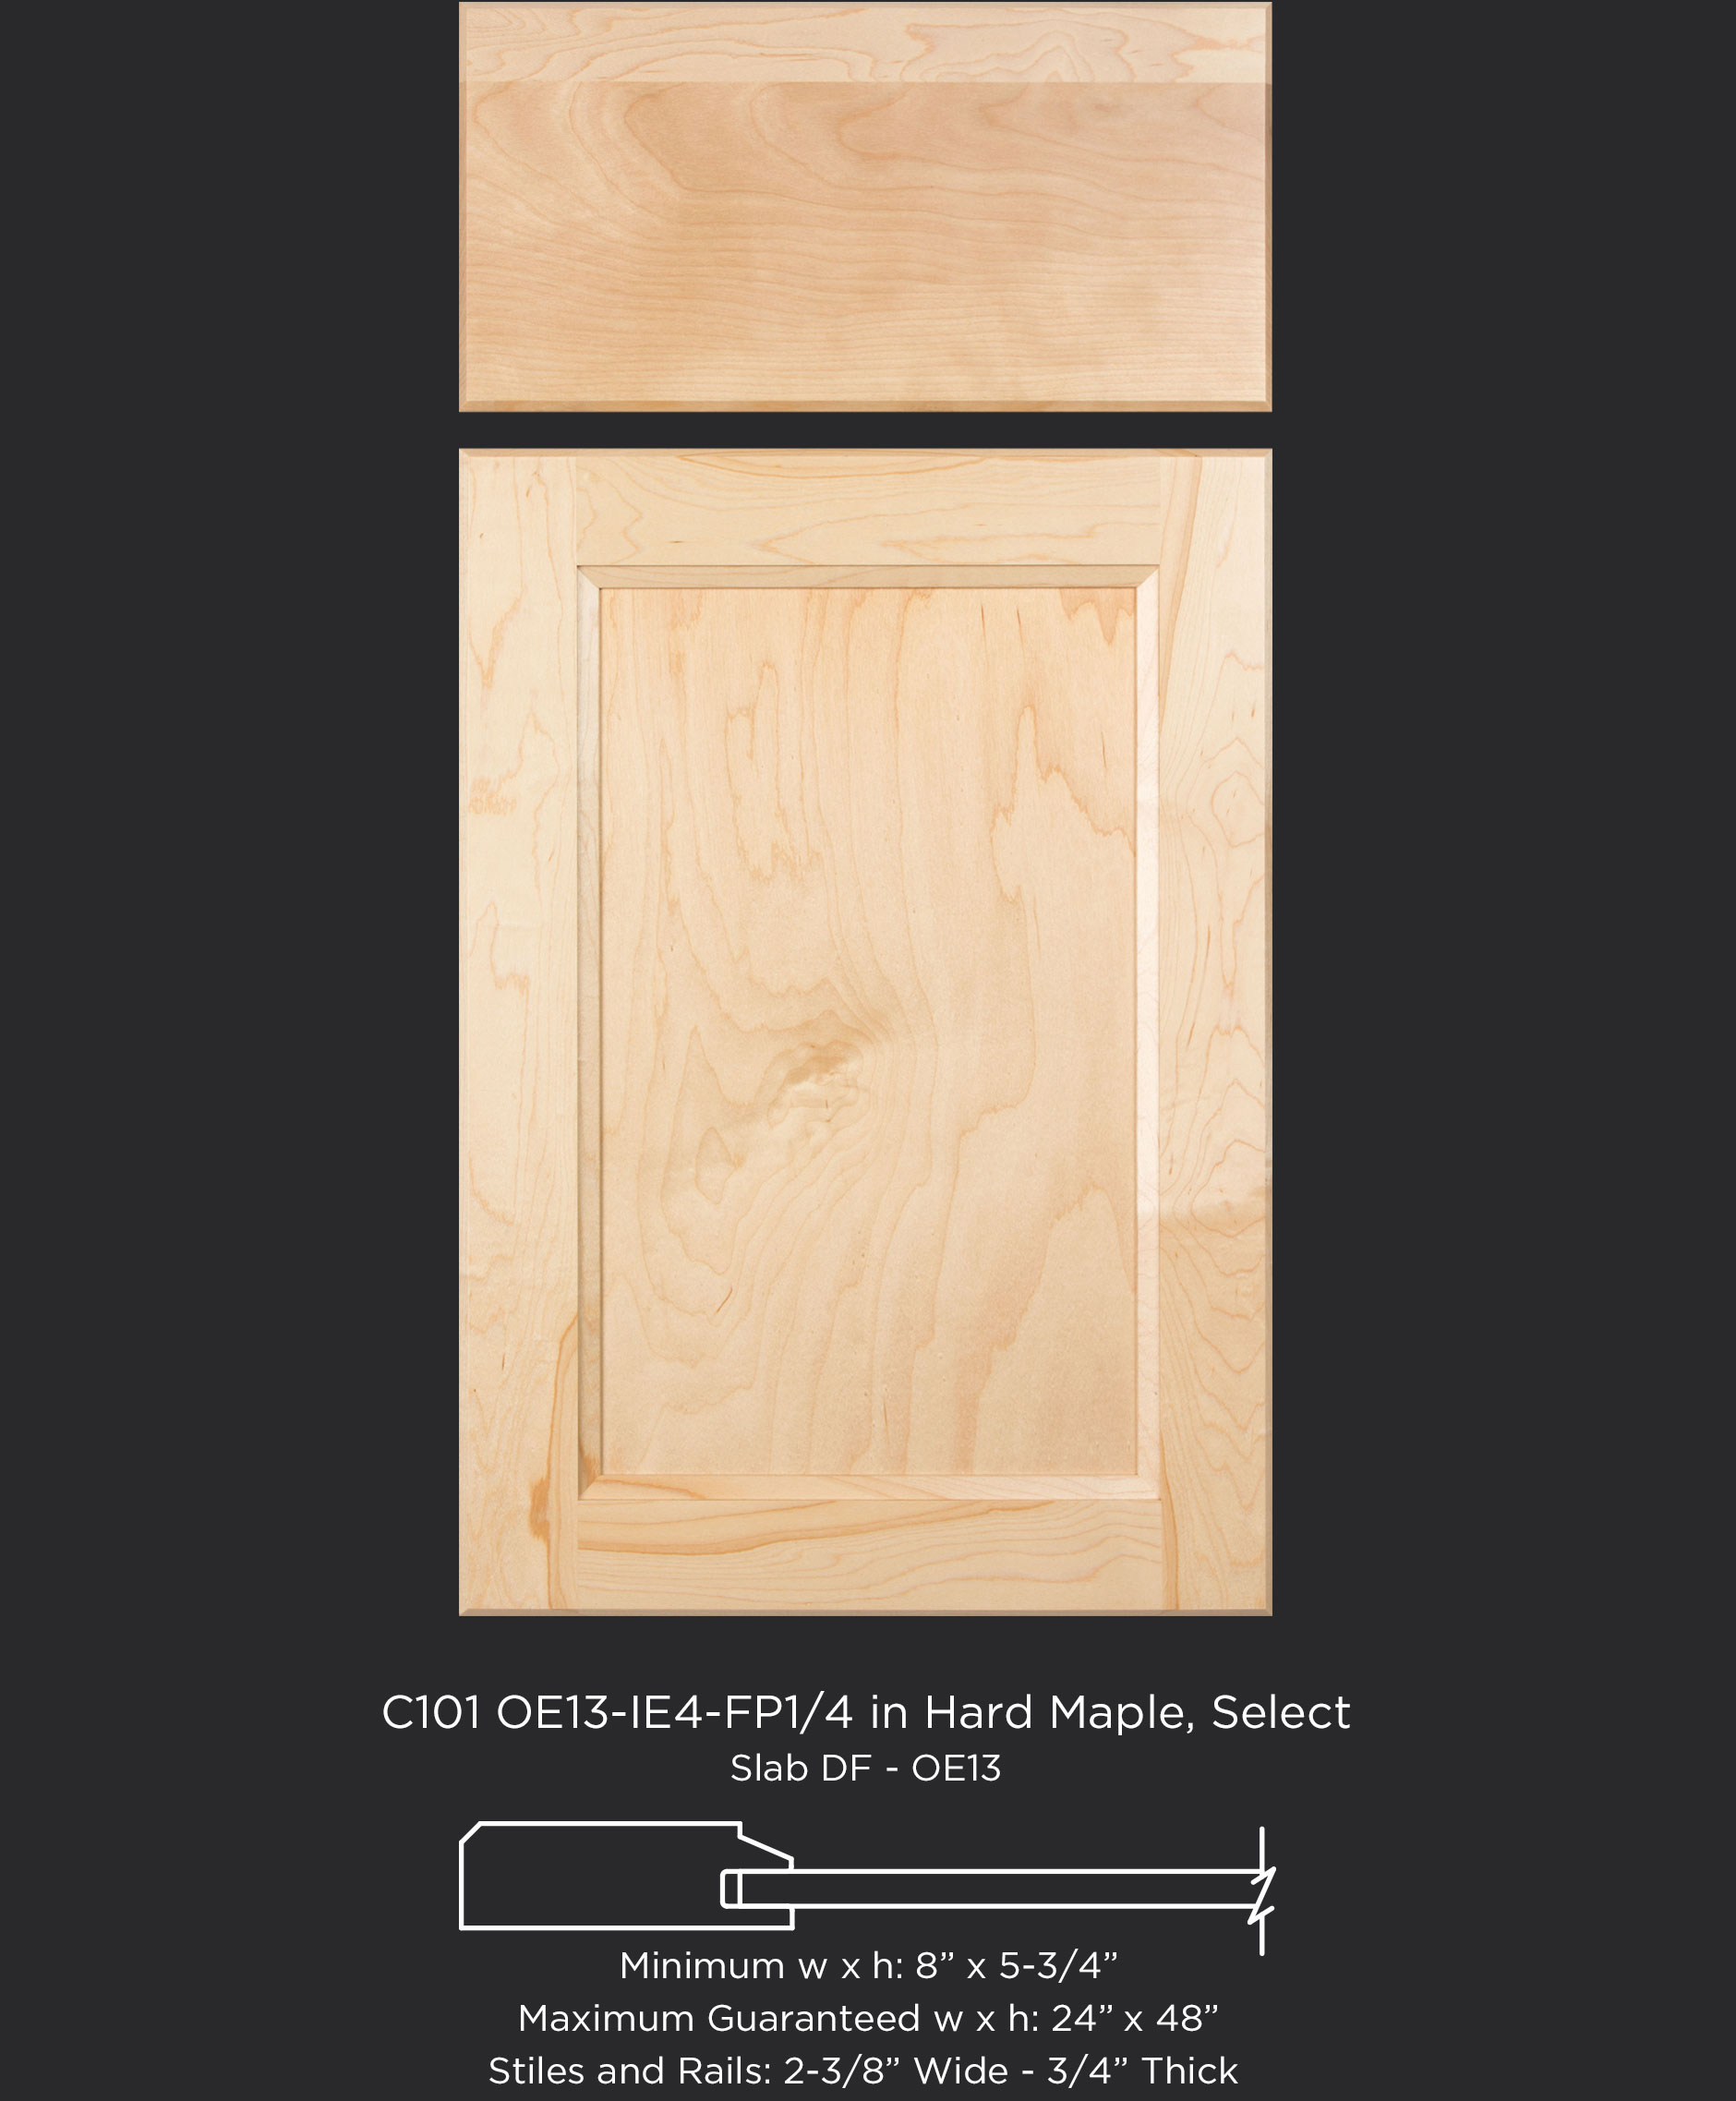 Cope and Stick Cabinet Door C101 OE13-IE4-FP1/4 Hard Maple, Select and slab drawer front with OE13